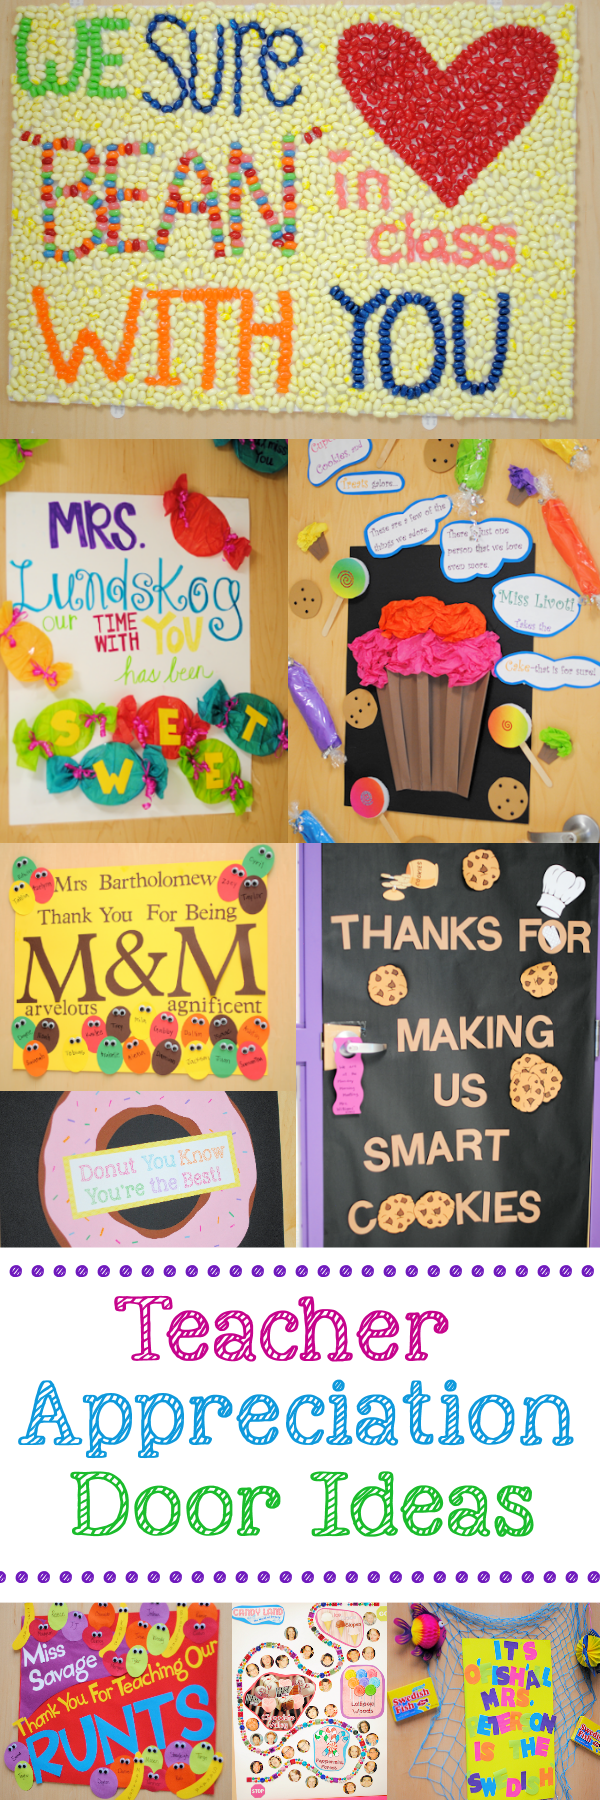 Teacher Appreciation Ideas Gifts Doors Themes More Crazy